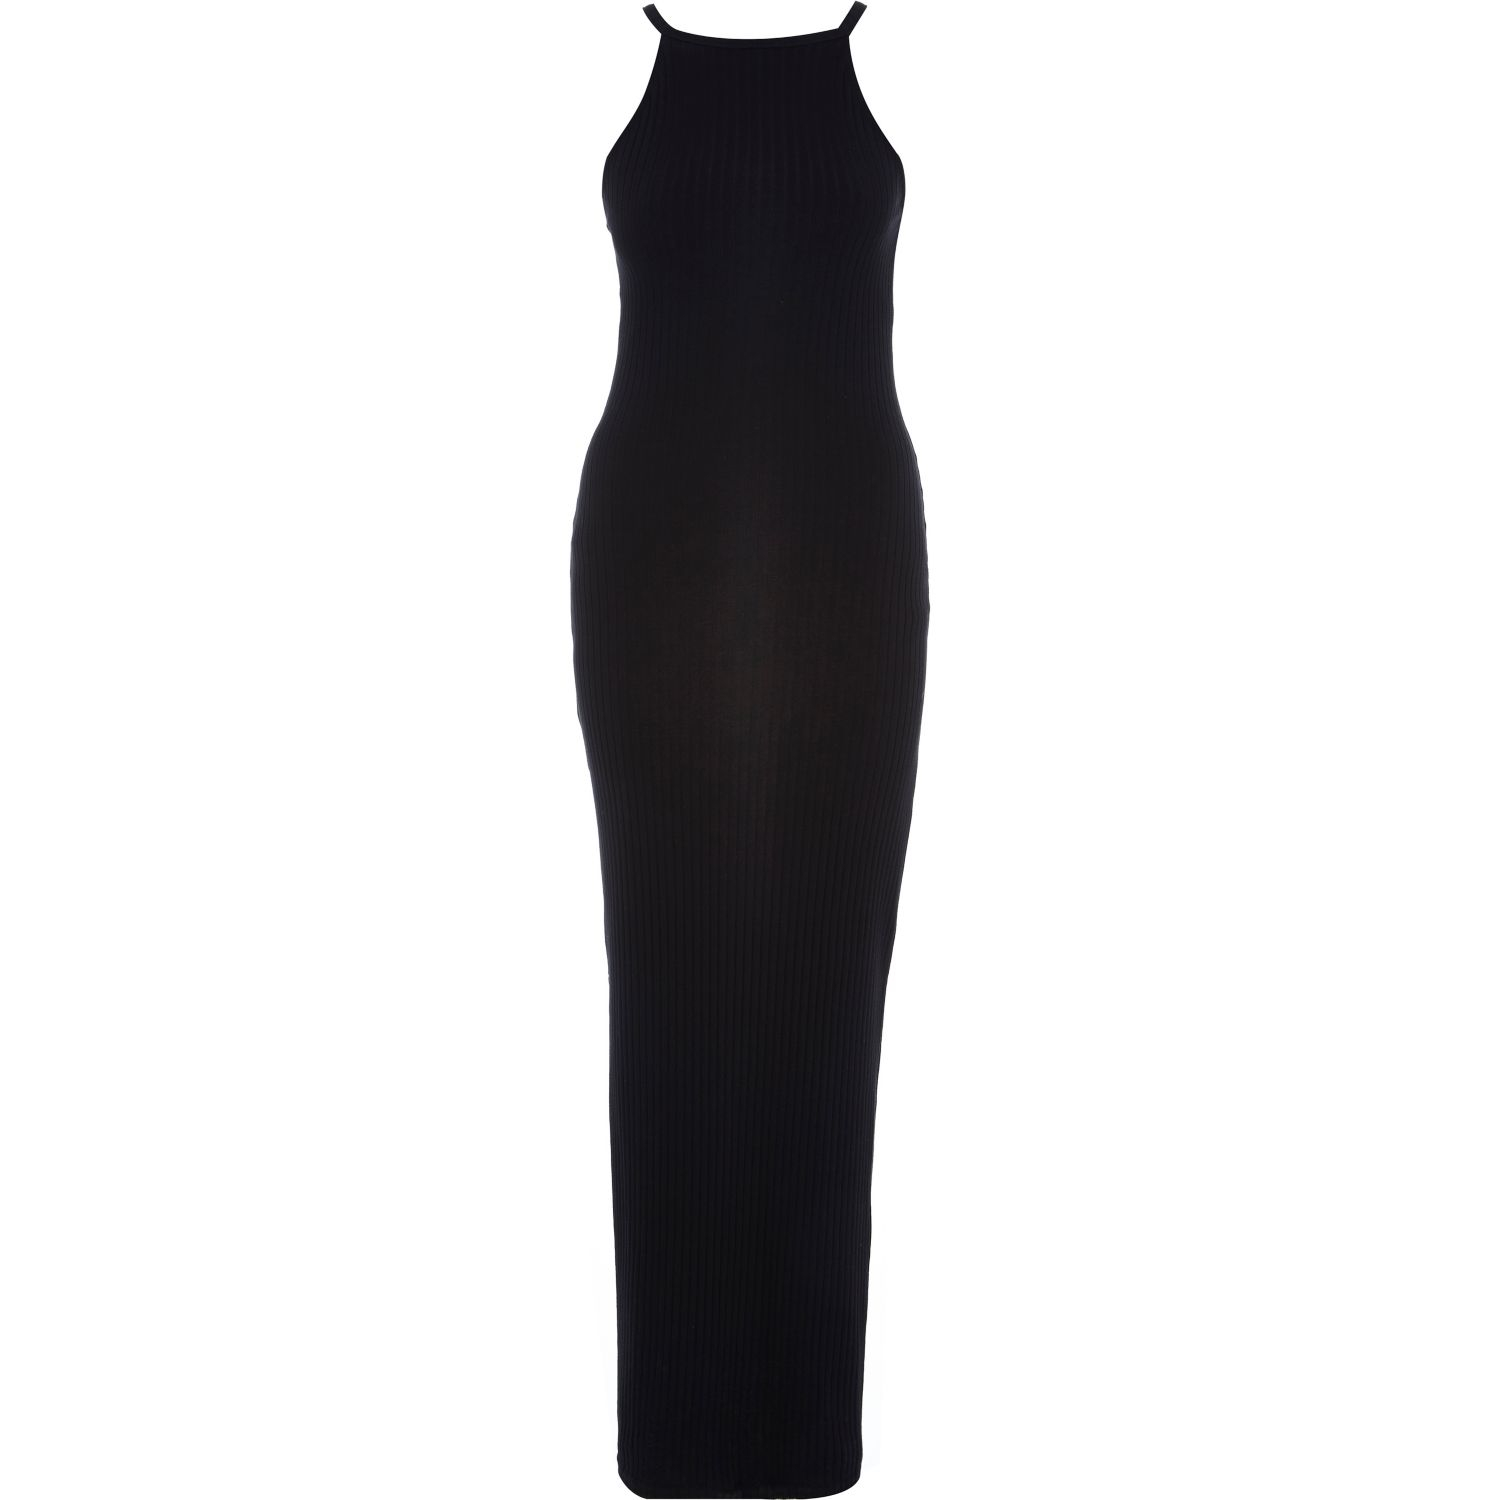 Black Bodycon Dress River Island - Clothing Brand Reviews